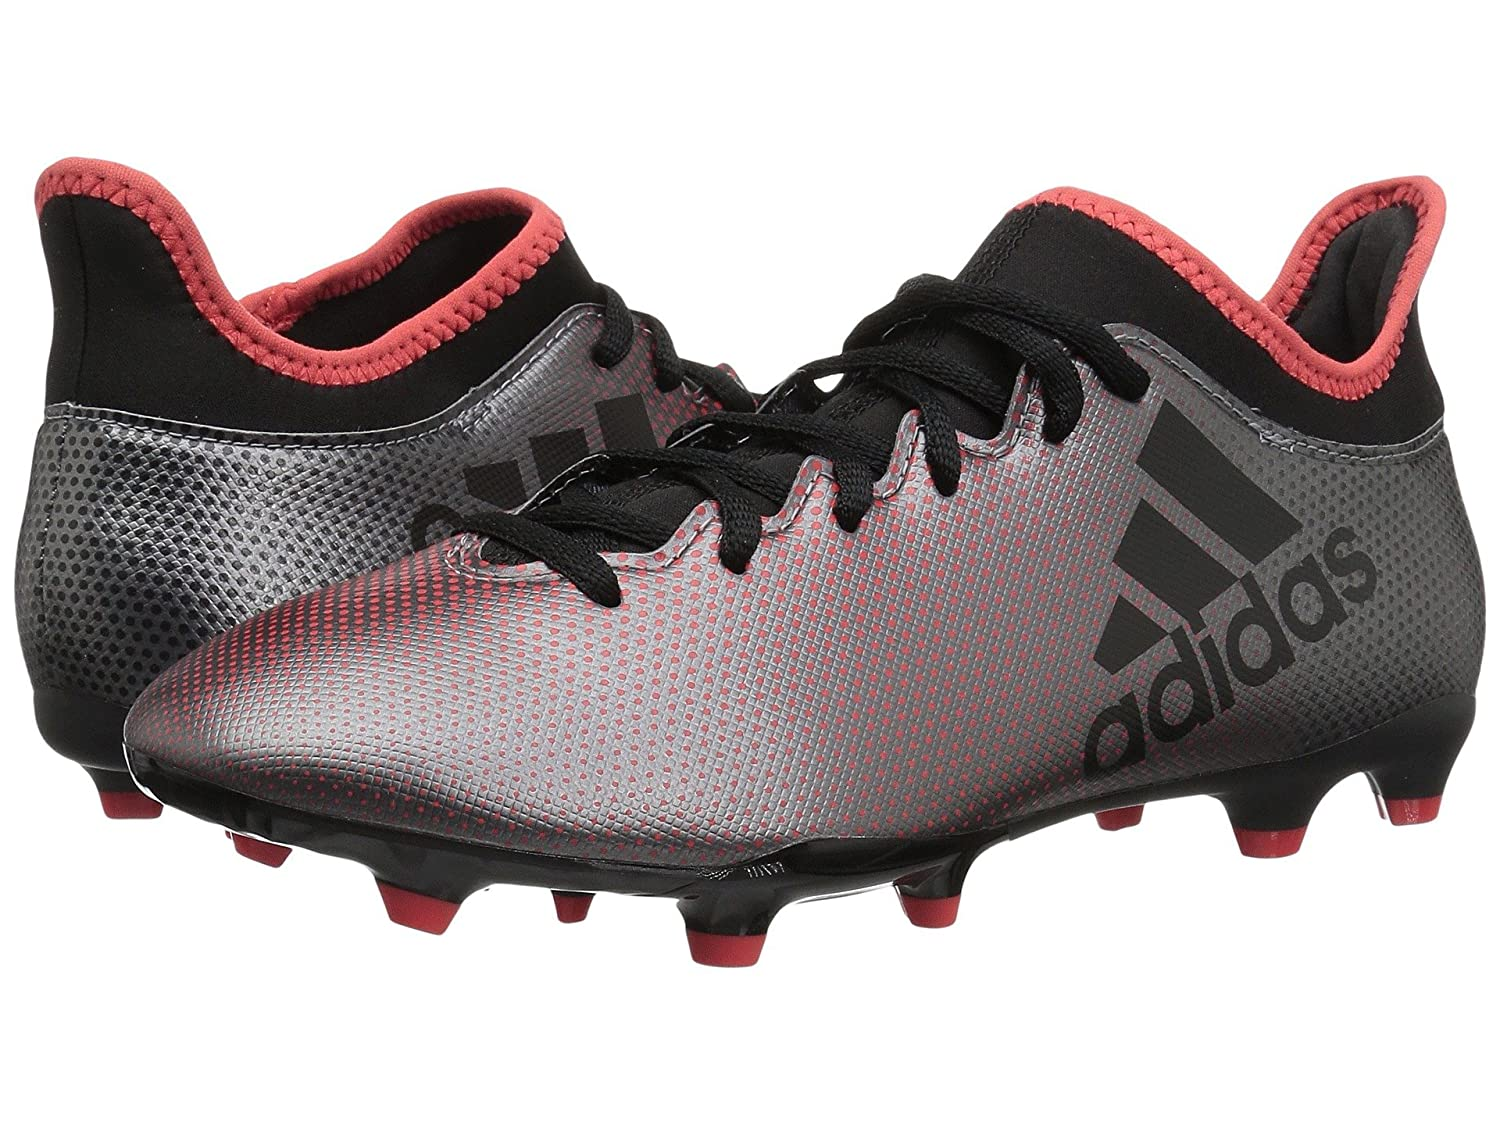 (アディダス) adidas メンズサッカーシューズ靴 X 17.3 FG Grey/Black/Real Coral 13.5 (31.5cm) D Medium B07BQHMJLN